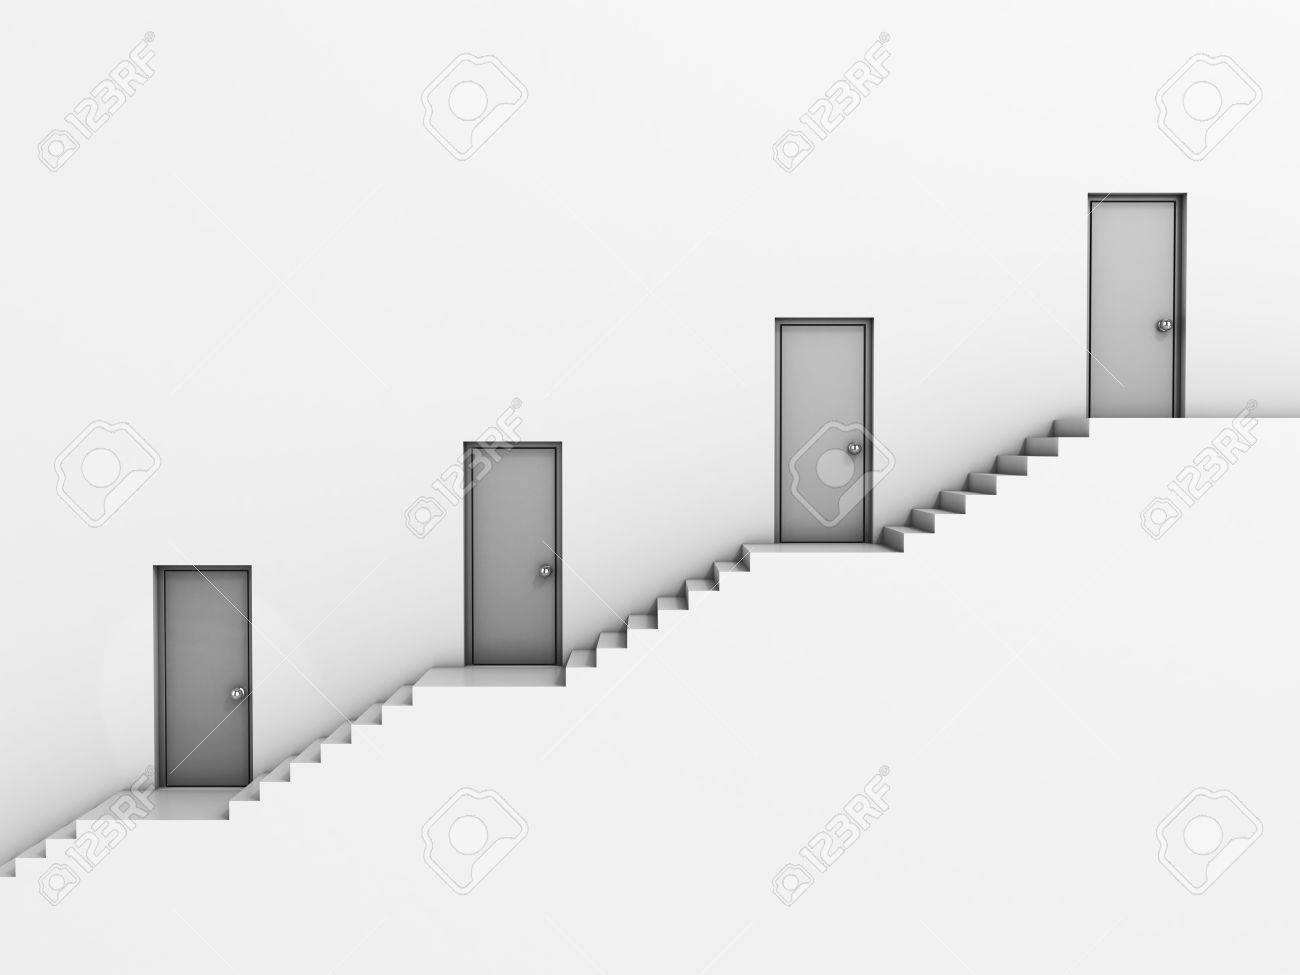 business hierarchy 3d concept - staircase with doors Stock Photo - 12330851 & Business Hierarchy 3d Concept - Staircase With Doors Stock Photo ...